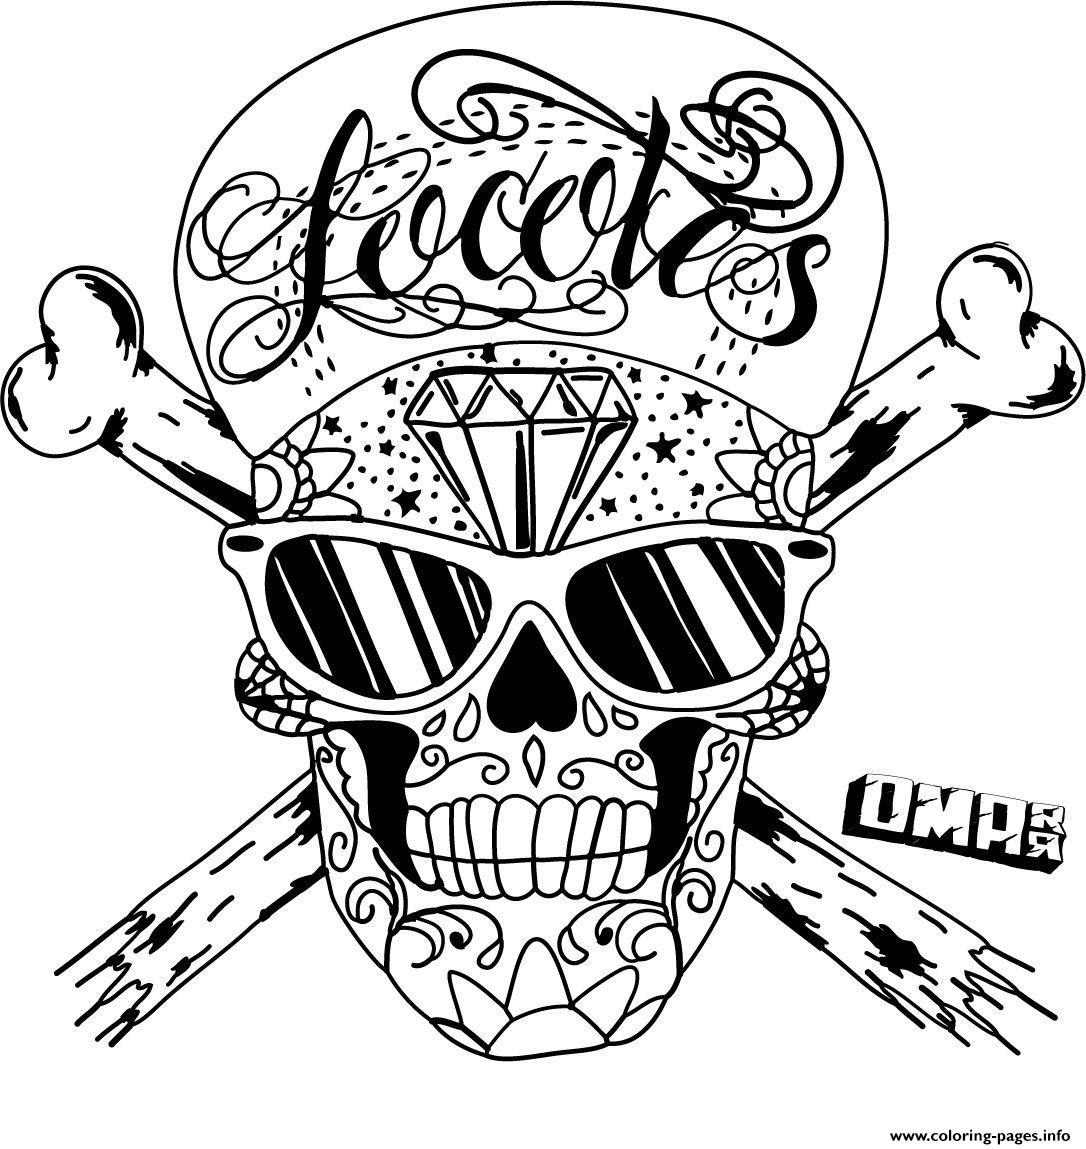 sugar skull by omardeath calavera coloring pages printable - Sugar Skull Coloring Pages Print